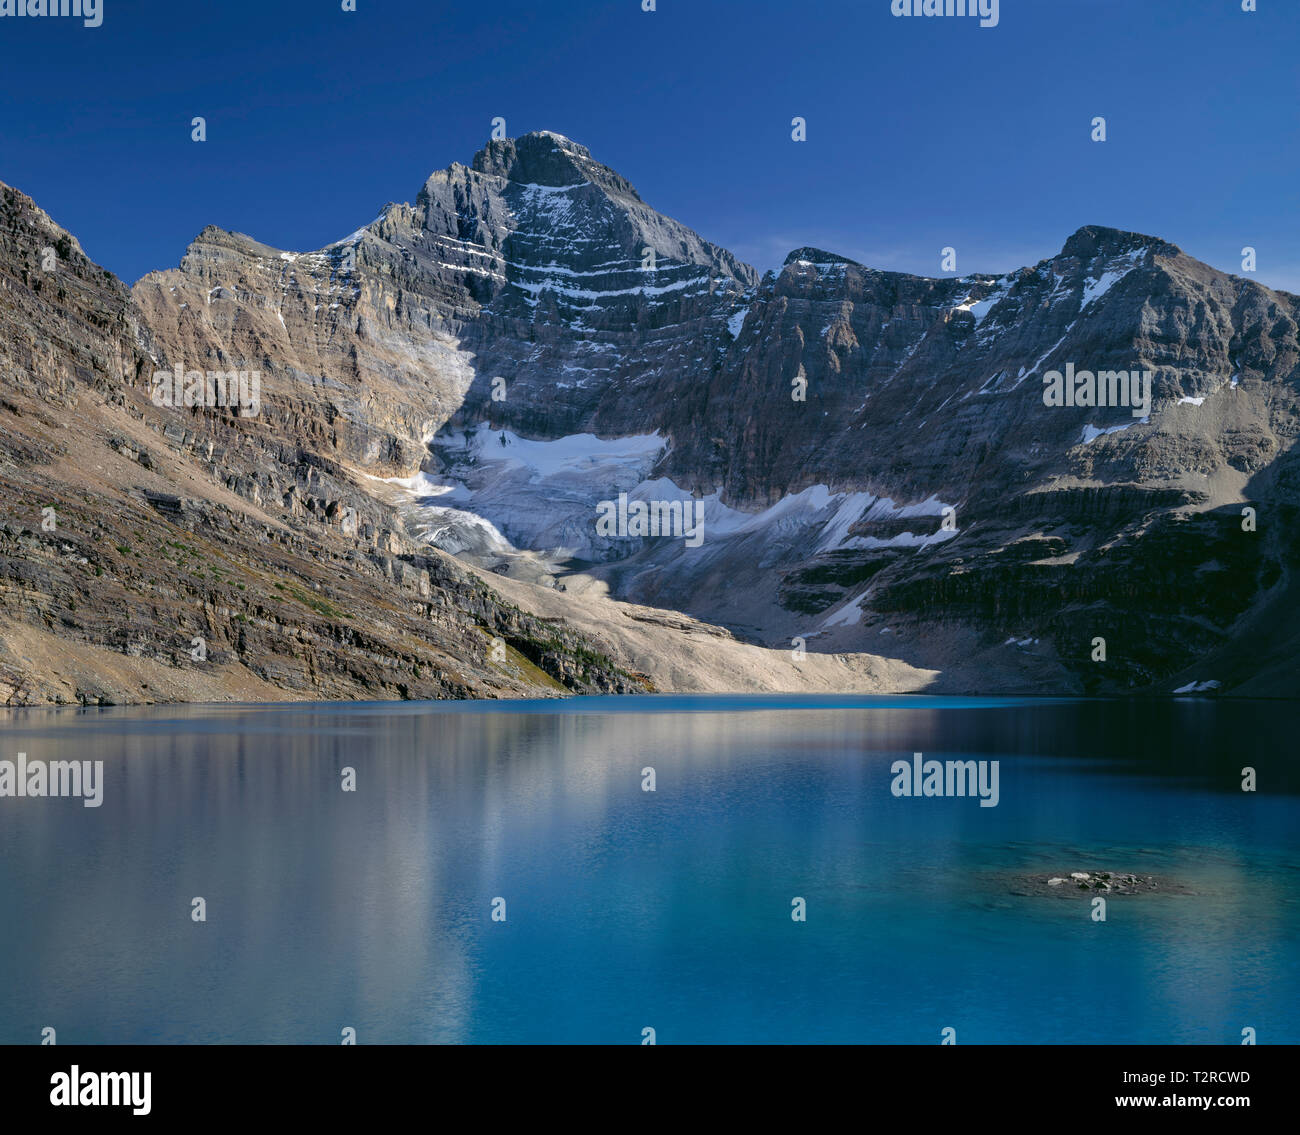 Canada British Columbia Yoho National Park Mt Biddle Towers Above The Turquoise Water Of Lake Mcarthur Stock Photo Alamy